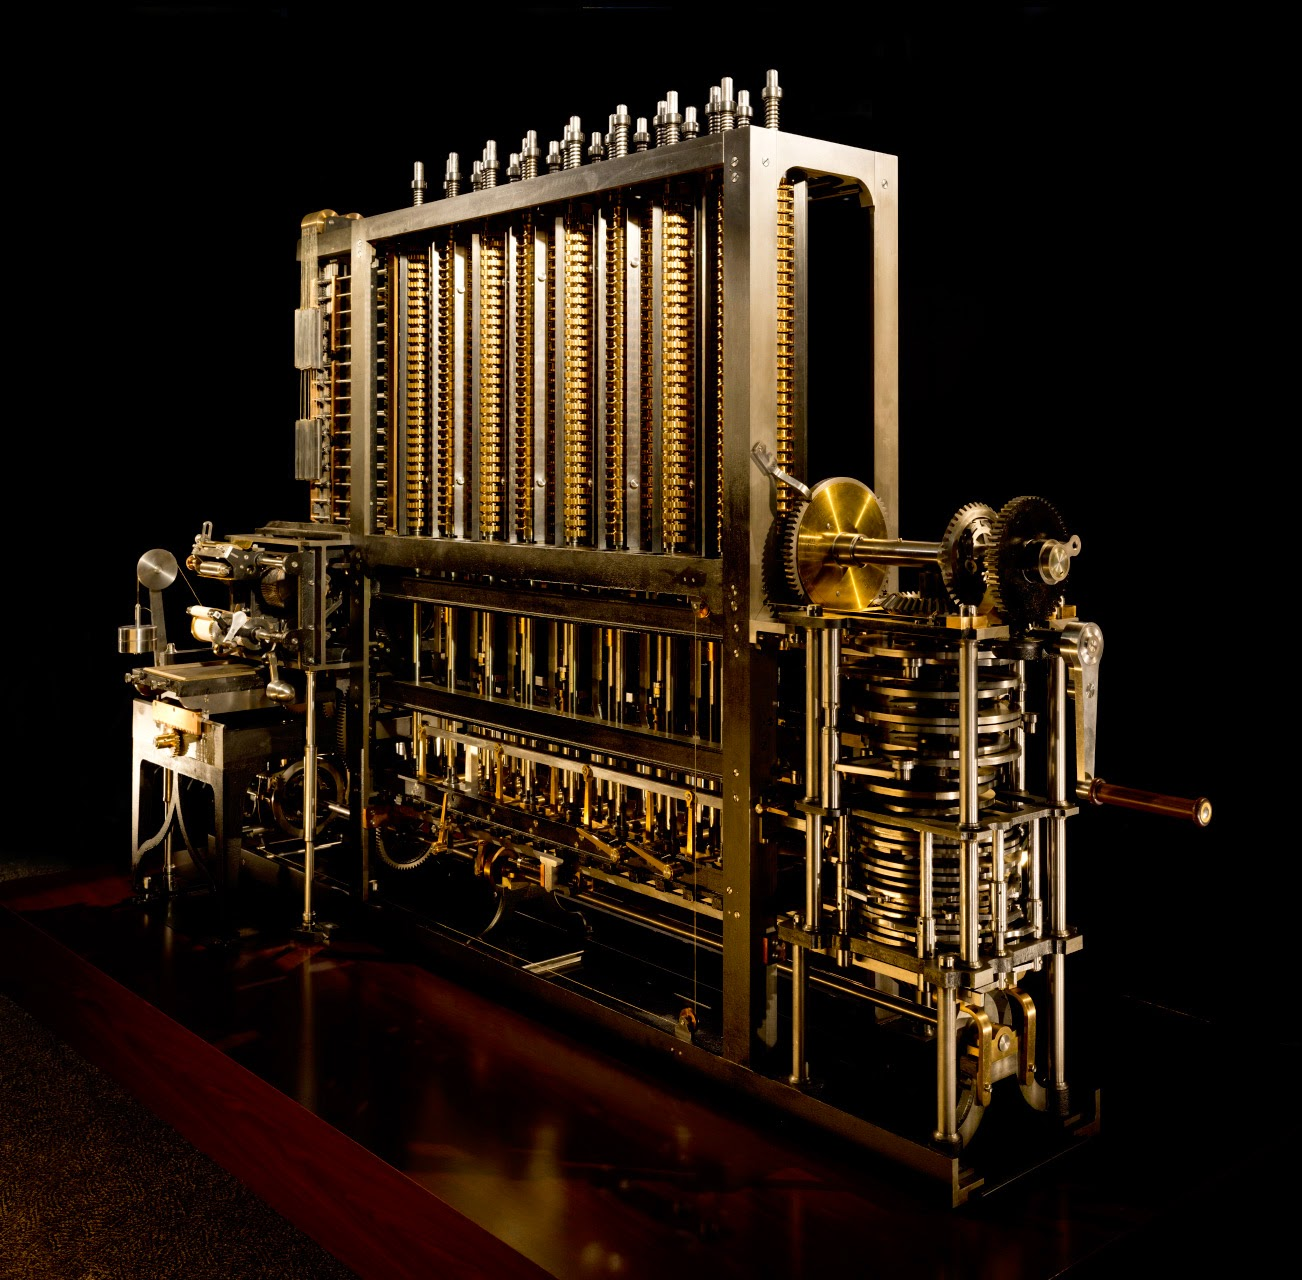 charles babbage short history of This analytical engine was conceived by english mathematician charles  babbage in 1837 it was version 20 of his difference engine, the.